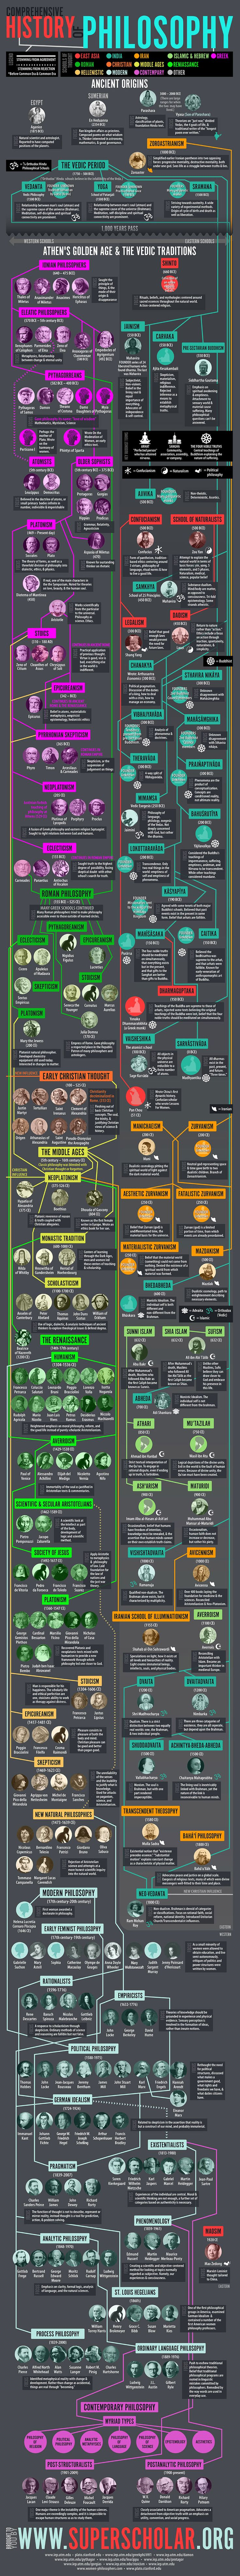 History of Philosophy Infographic #philosopher